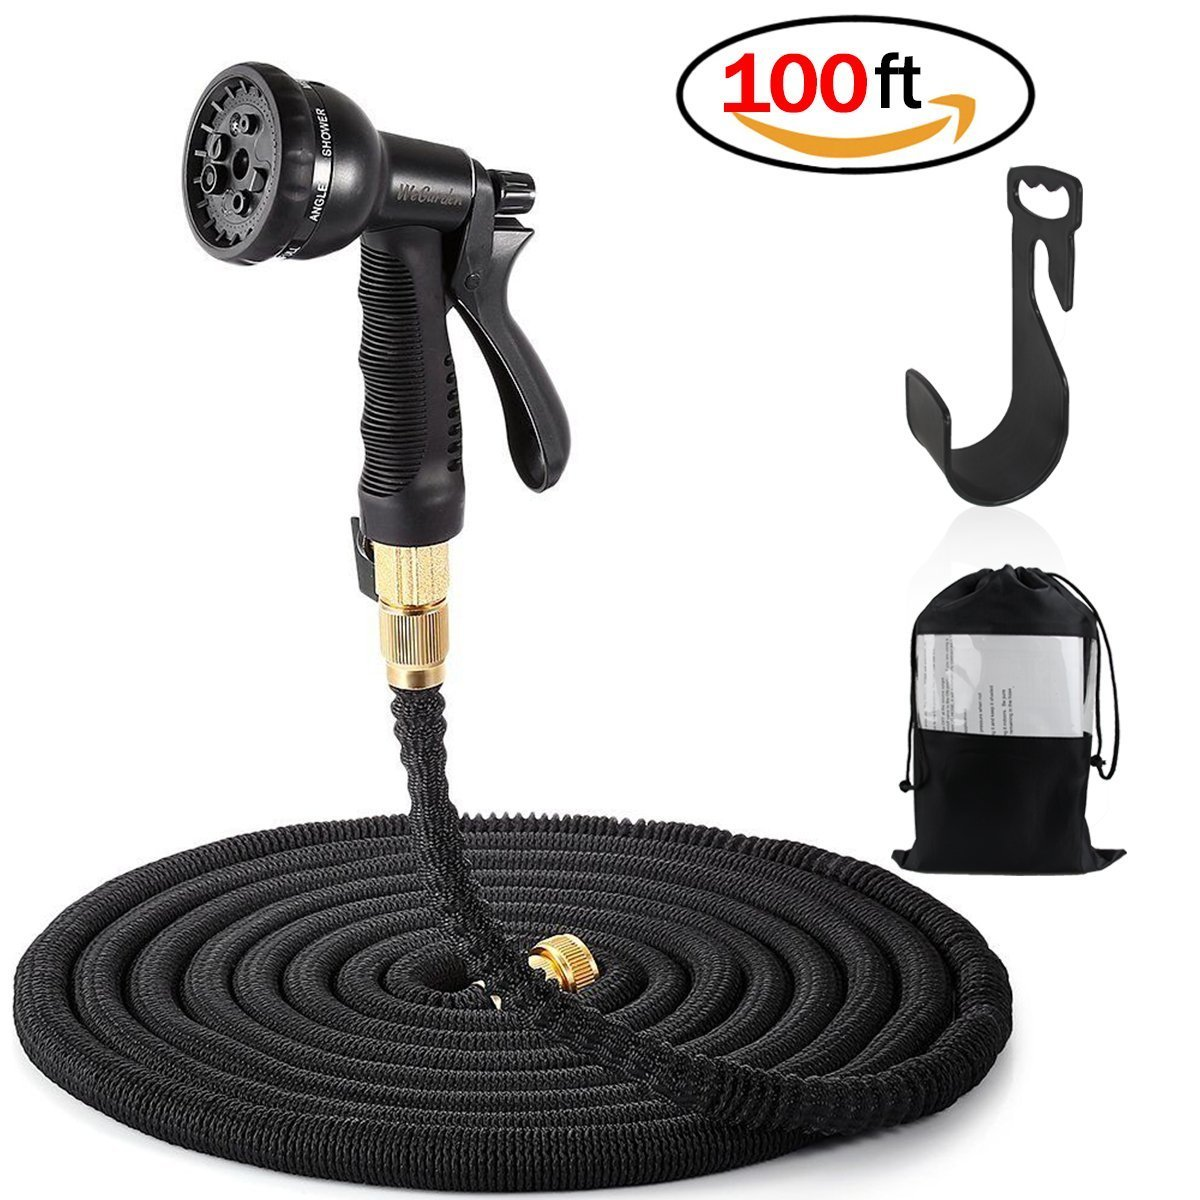 Expandable Garden Hose, JER 100Ft Magic Garden Hose Stretchable Hosepipe with 8-pattern Spray Nozzle & Copepr Brass Connectors & Convenient Wall Holder, Used for Car Washing Garden Watering